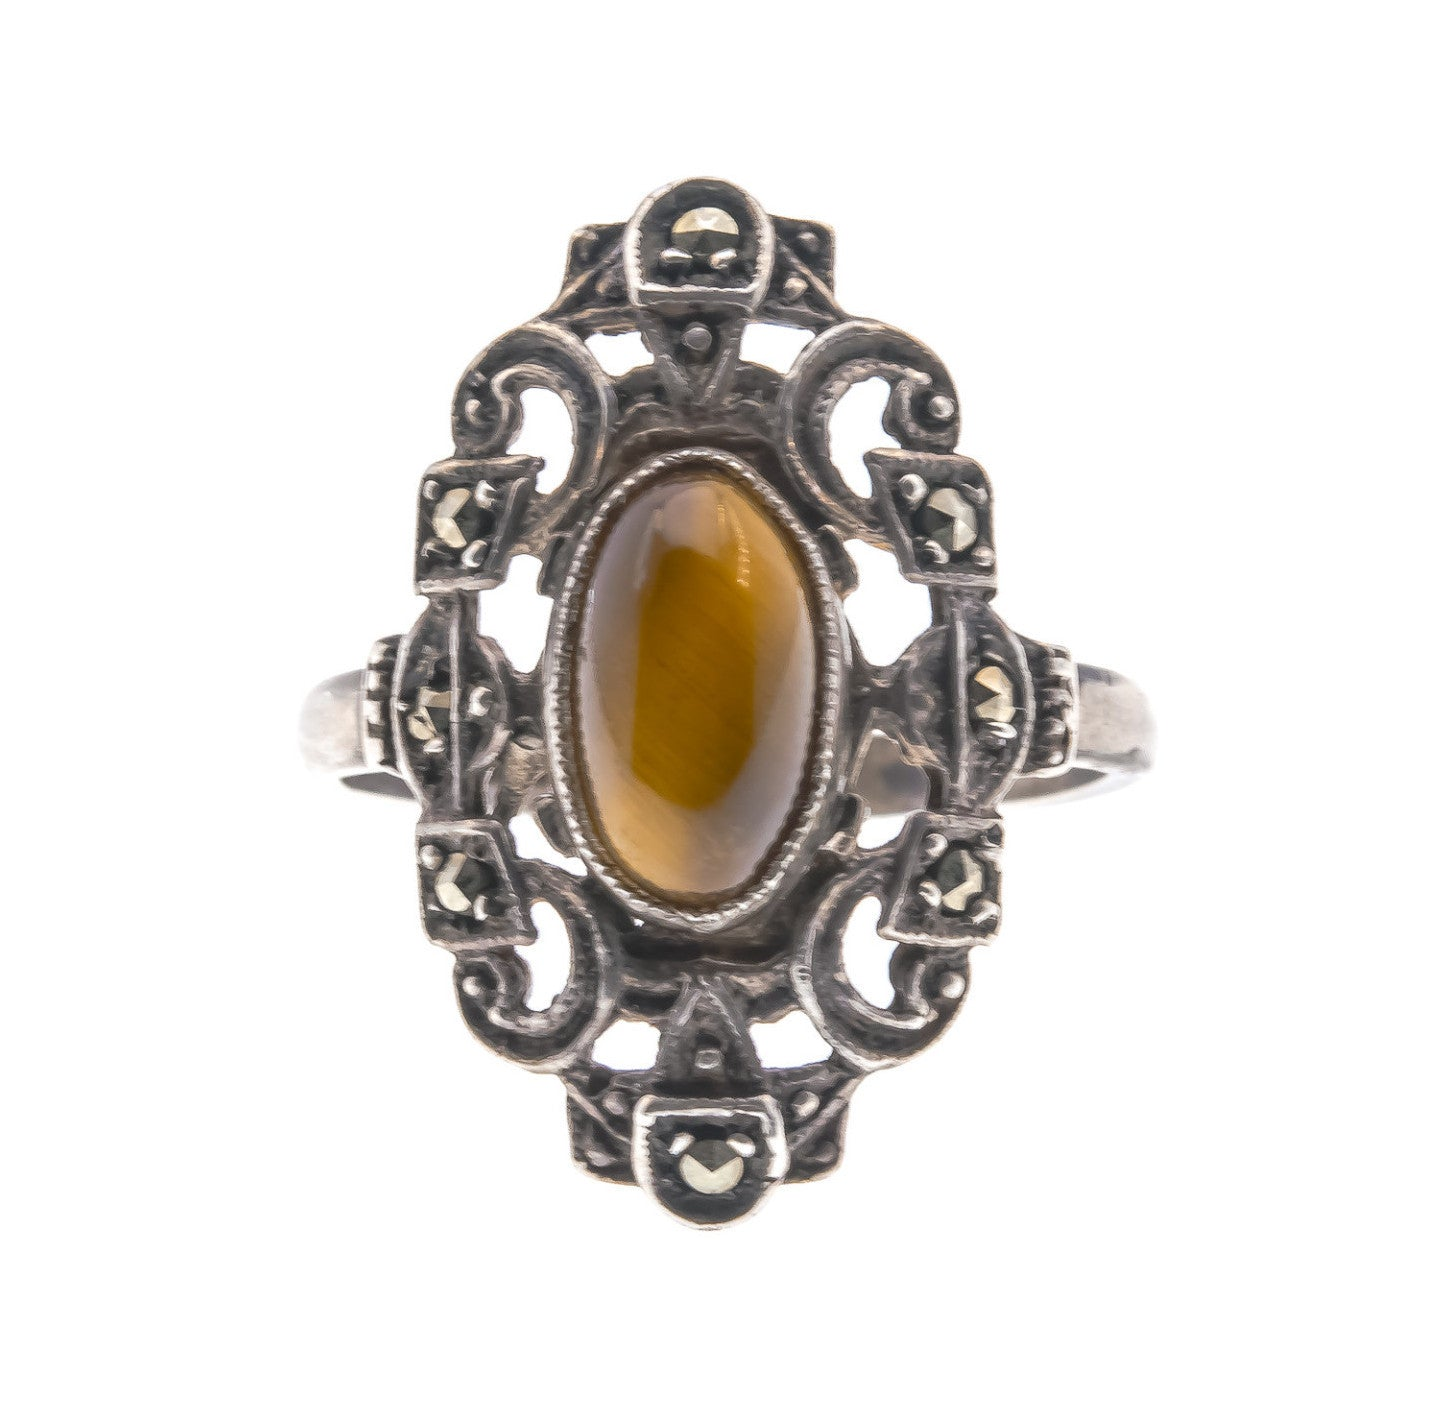 Vintage Sterling Silver Tiger Eye and Marcasite Ring